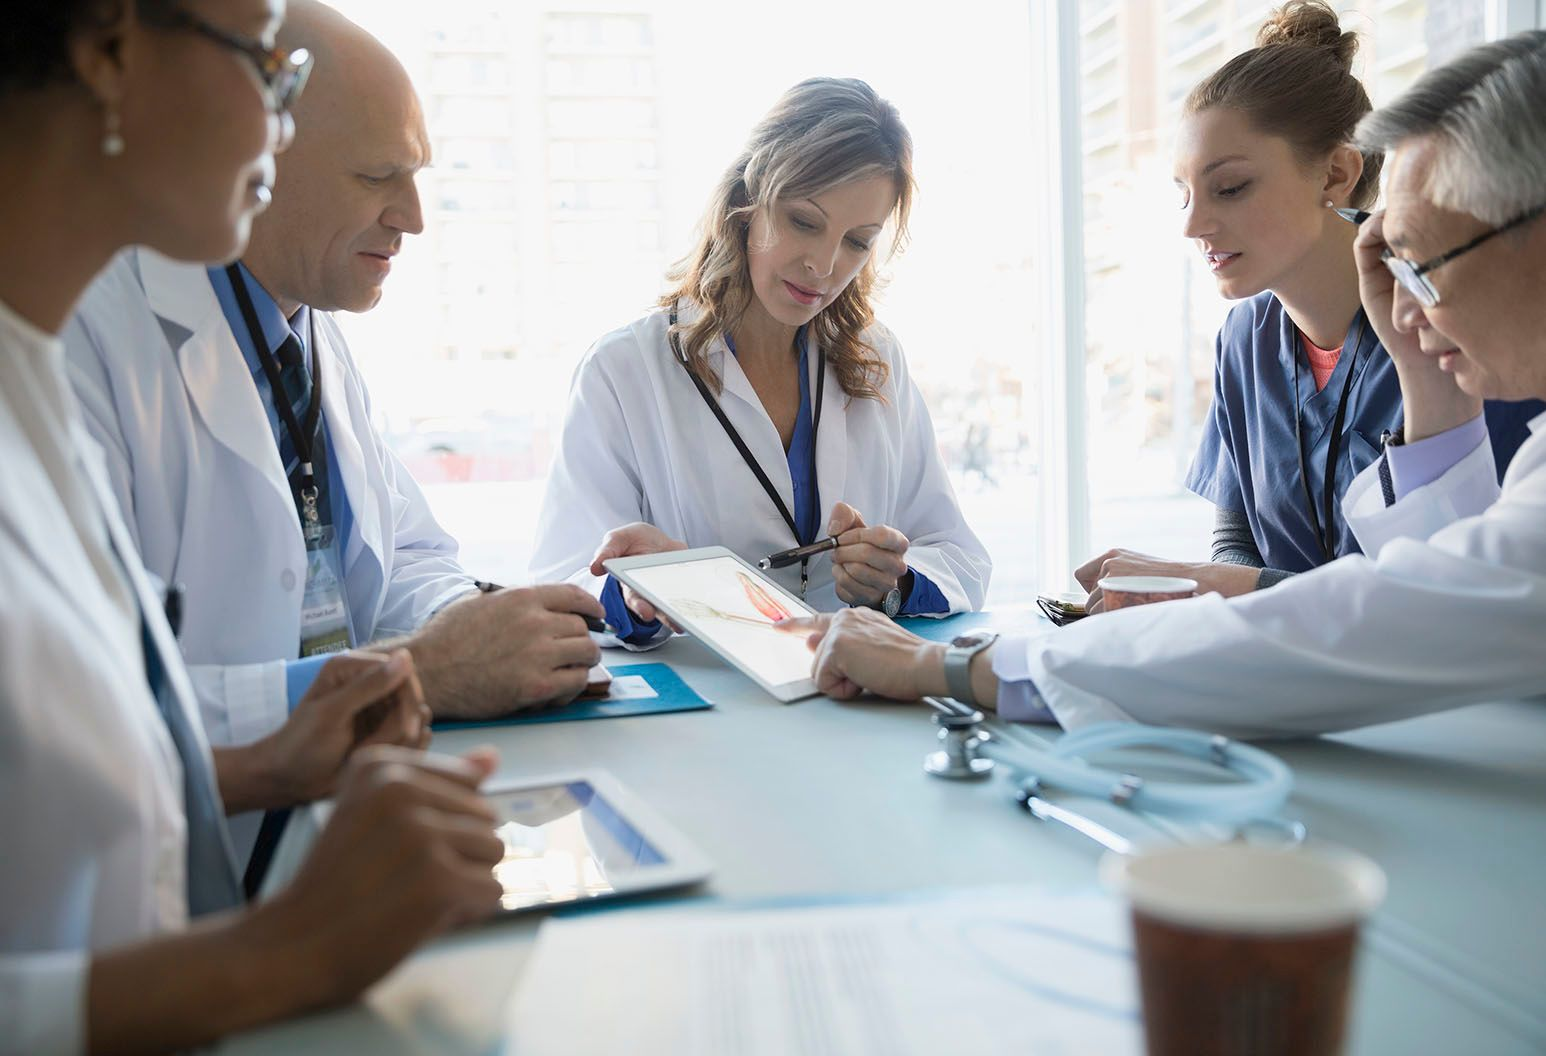 Several doctors, male and female, sit at a table collaborating. A female doctor with blonde hair has an image on a tablet and another doctor is pointing to it.